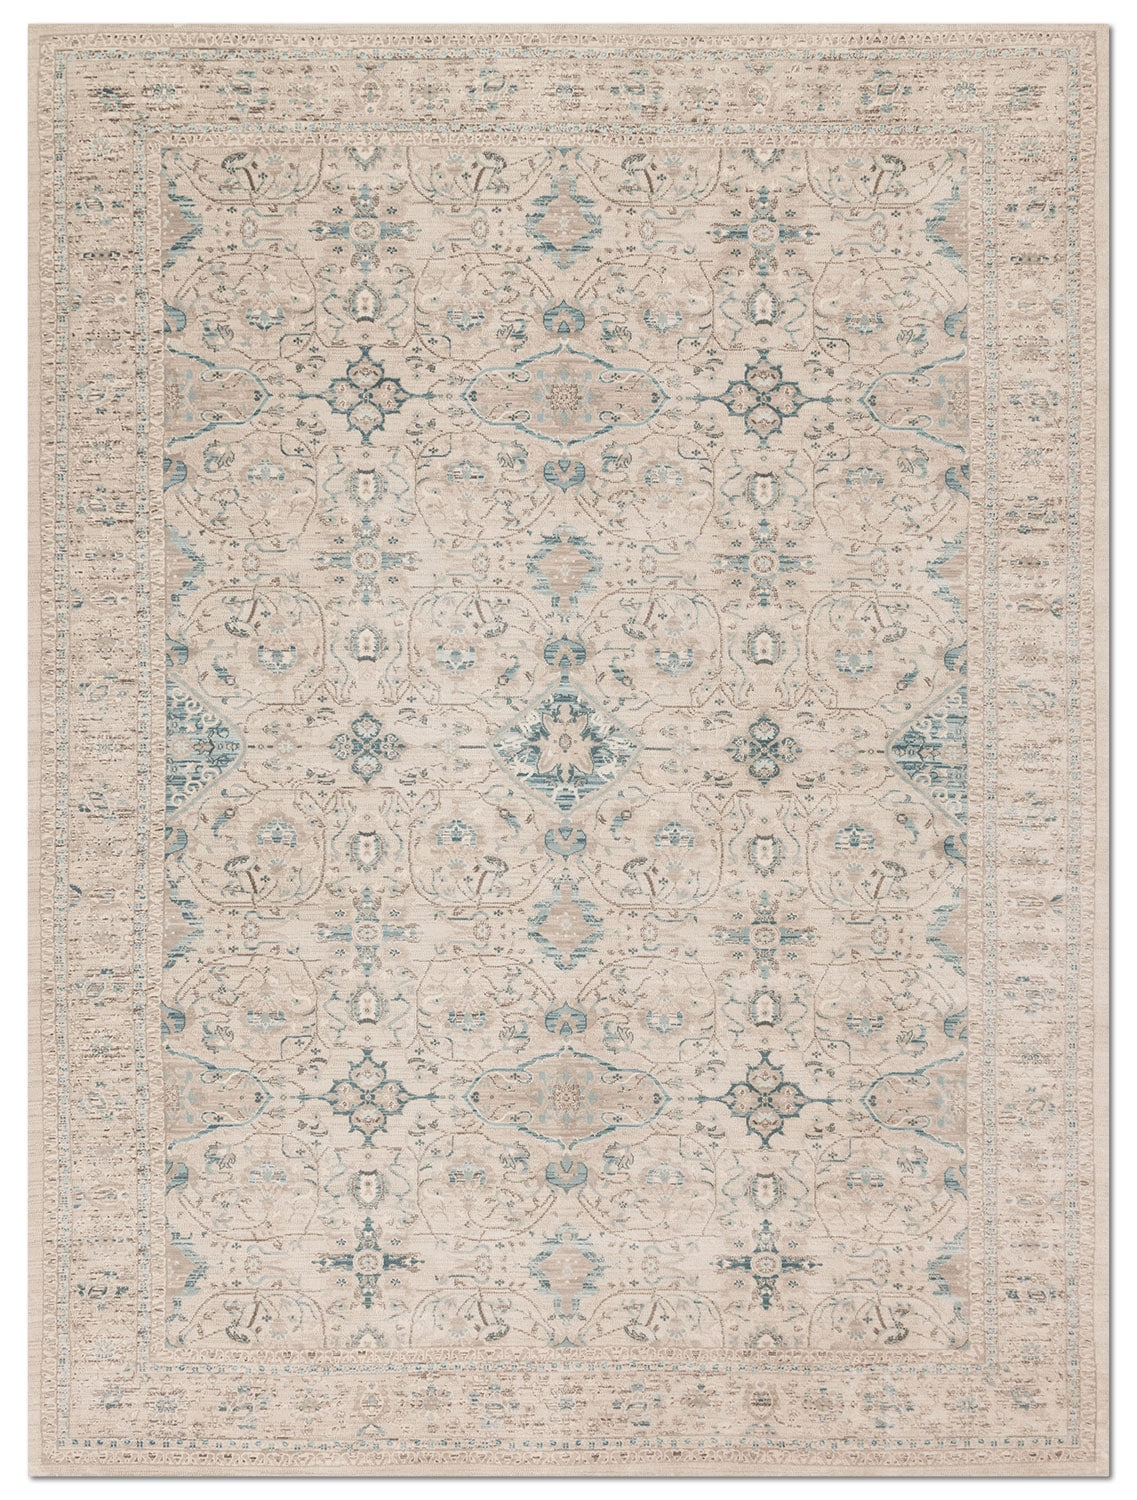 Rugs - Ella Rose 12' x 15' Rug - Bone